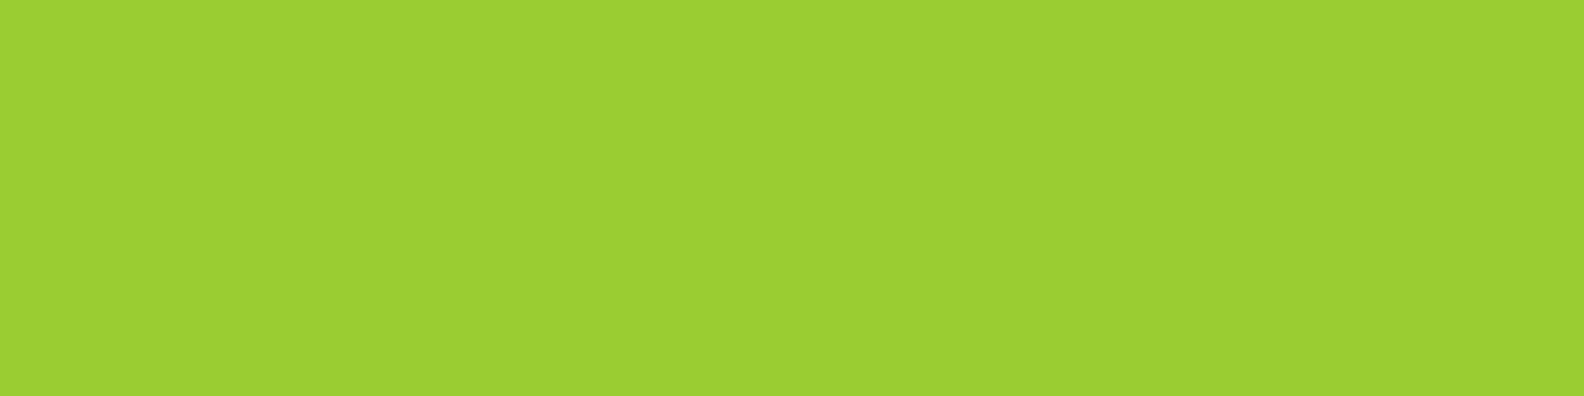 1584x396 Yellow-green Solid Color Background